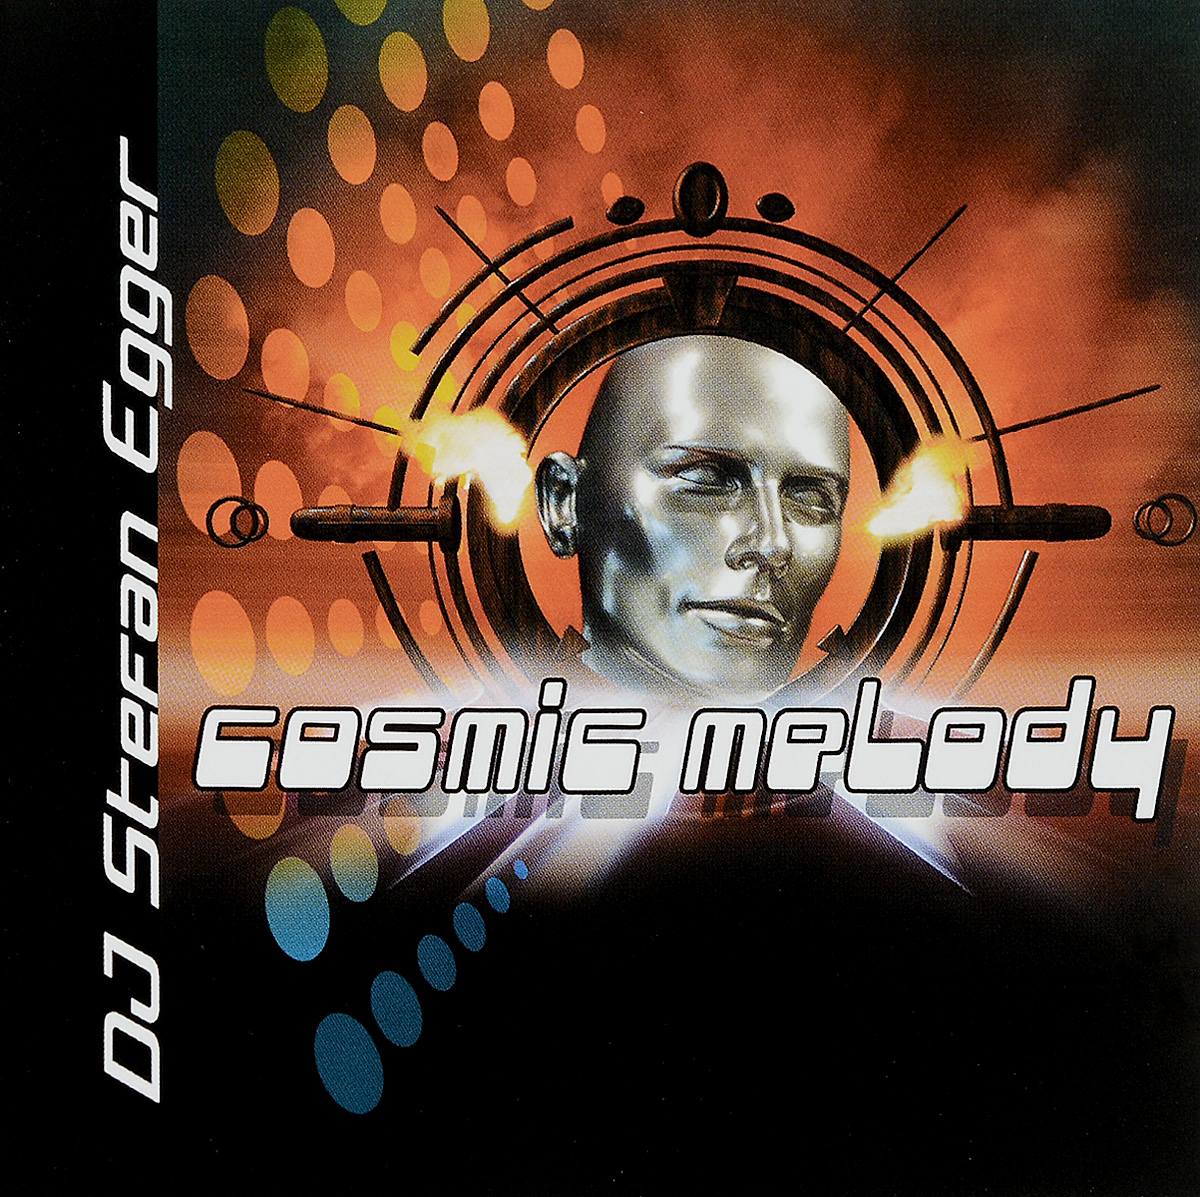 Stefan Egger / DJ Stefan Egger DJ Stefan Egger. Cosmic Melody (CD) leather s dj amdition level 2 cd